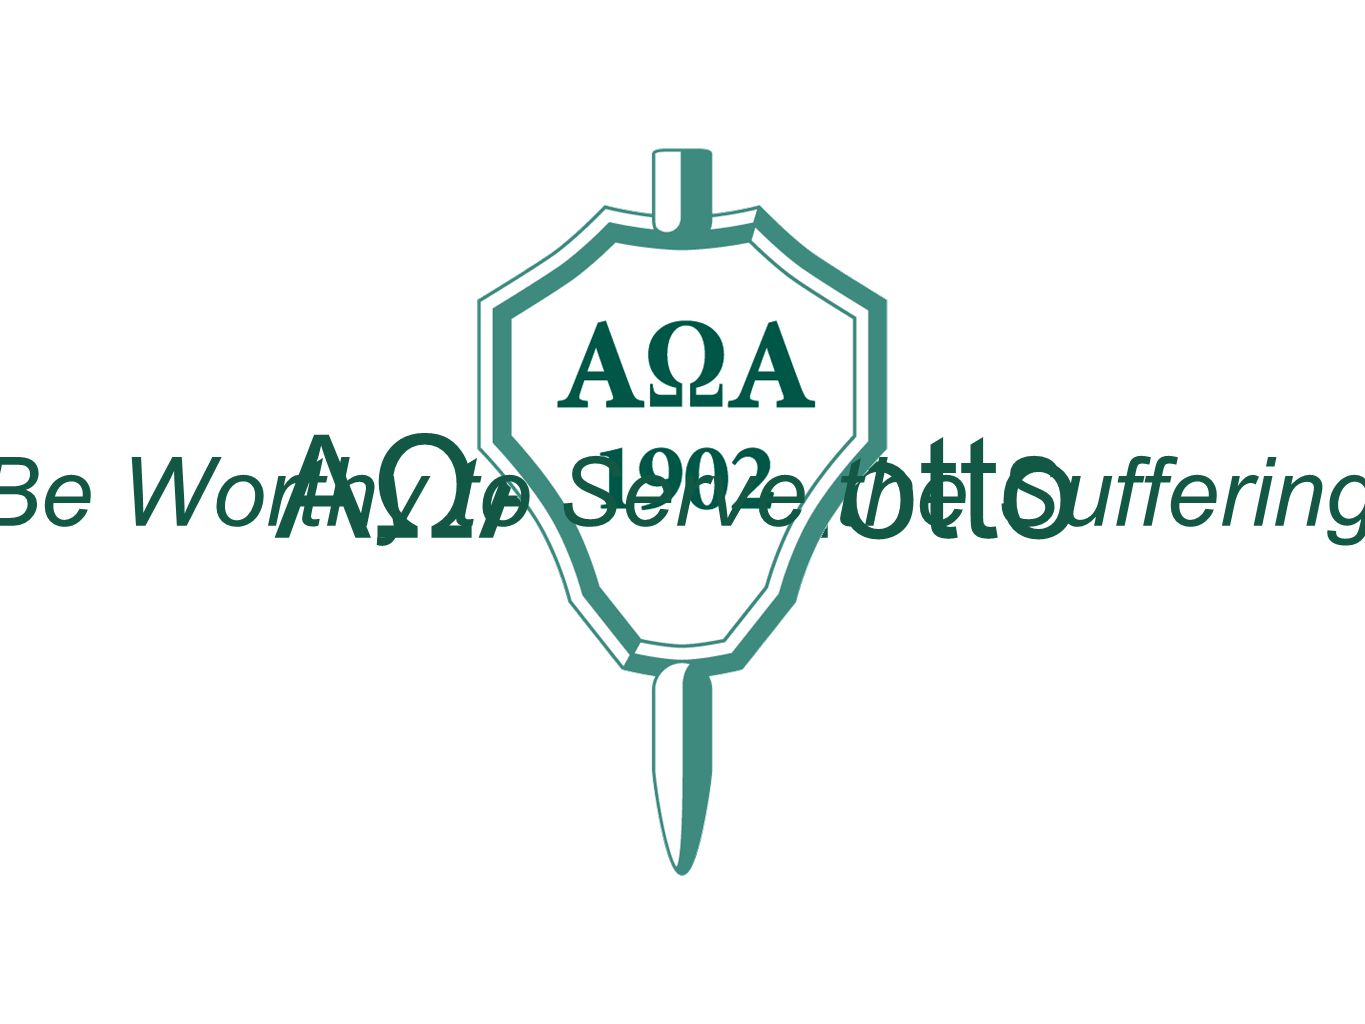 AΩA's Motto Be Worthy to Serve the Suffering